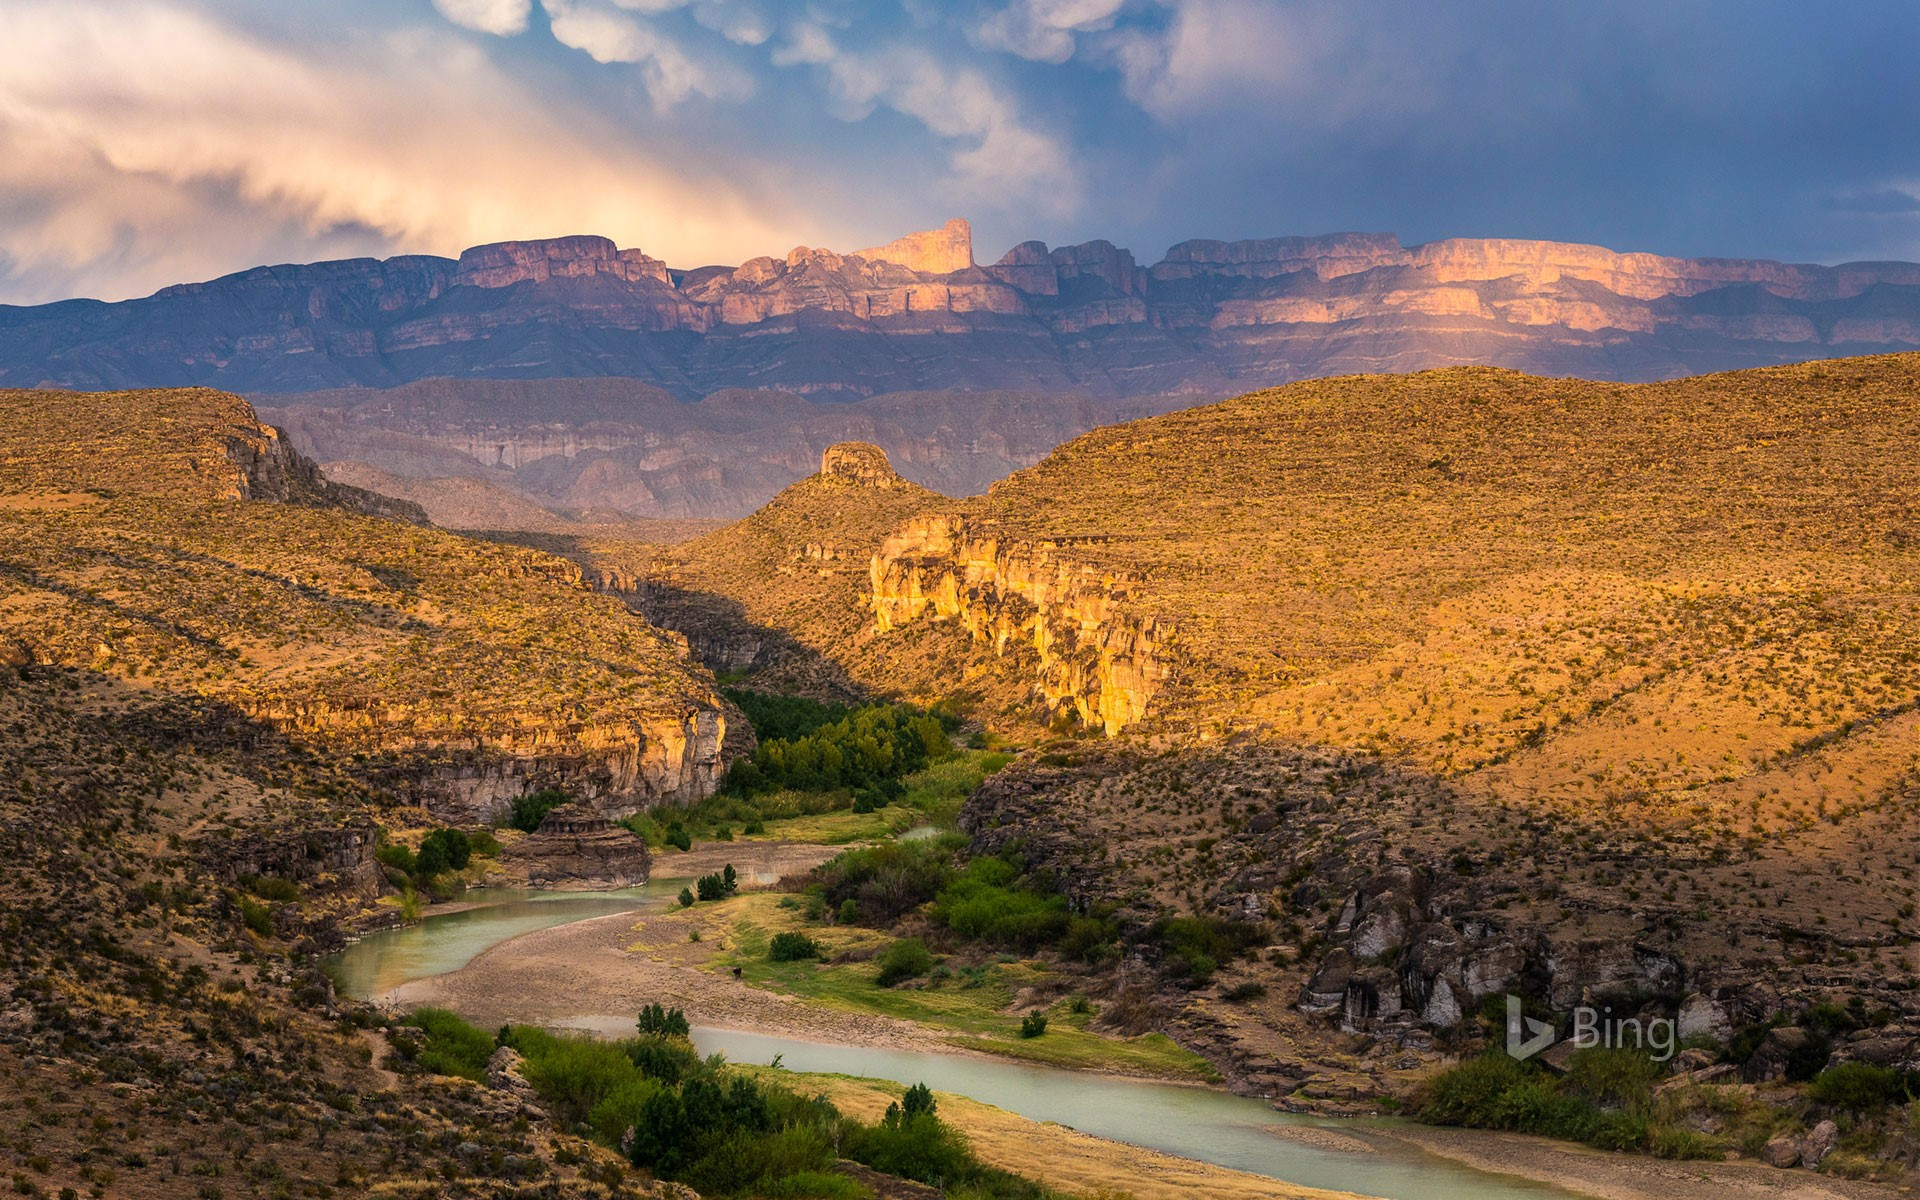 Rio Grande and Sierra del Carmen range in Big Bend National Park, Texas (© Grant Ordelheide/Tandem Stills + Motion)